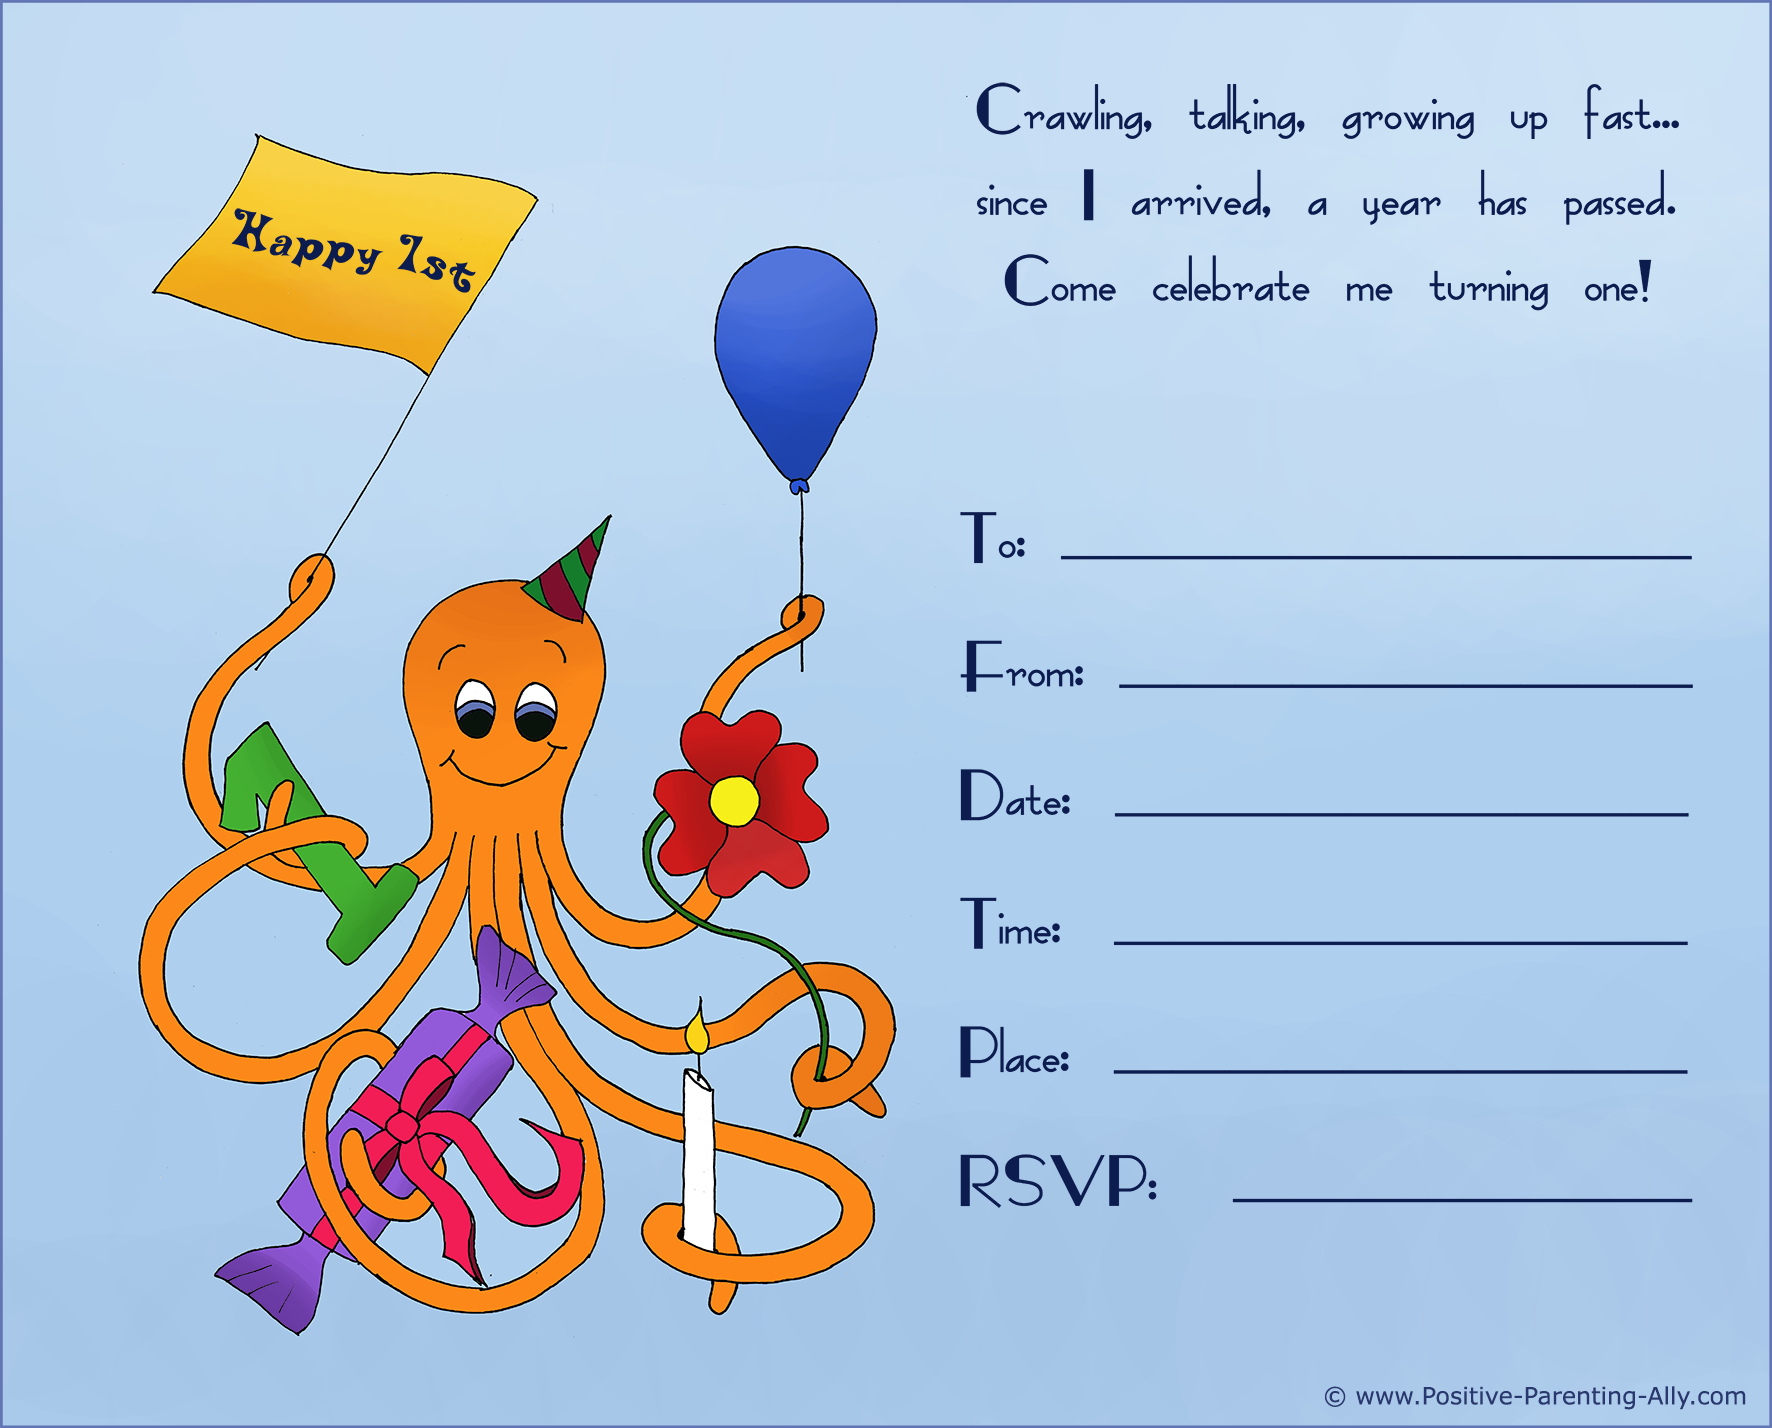 Happy octopus on 1st birthday invitation.